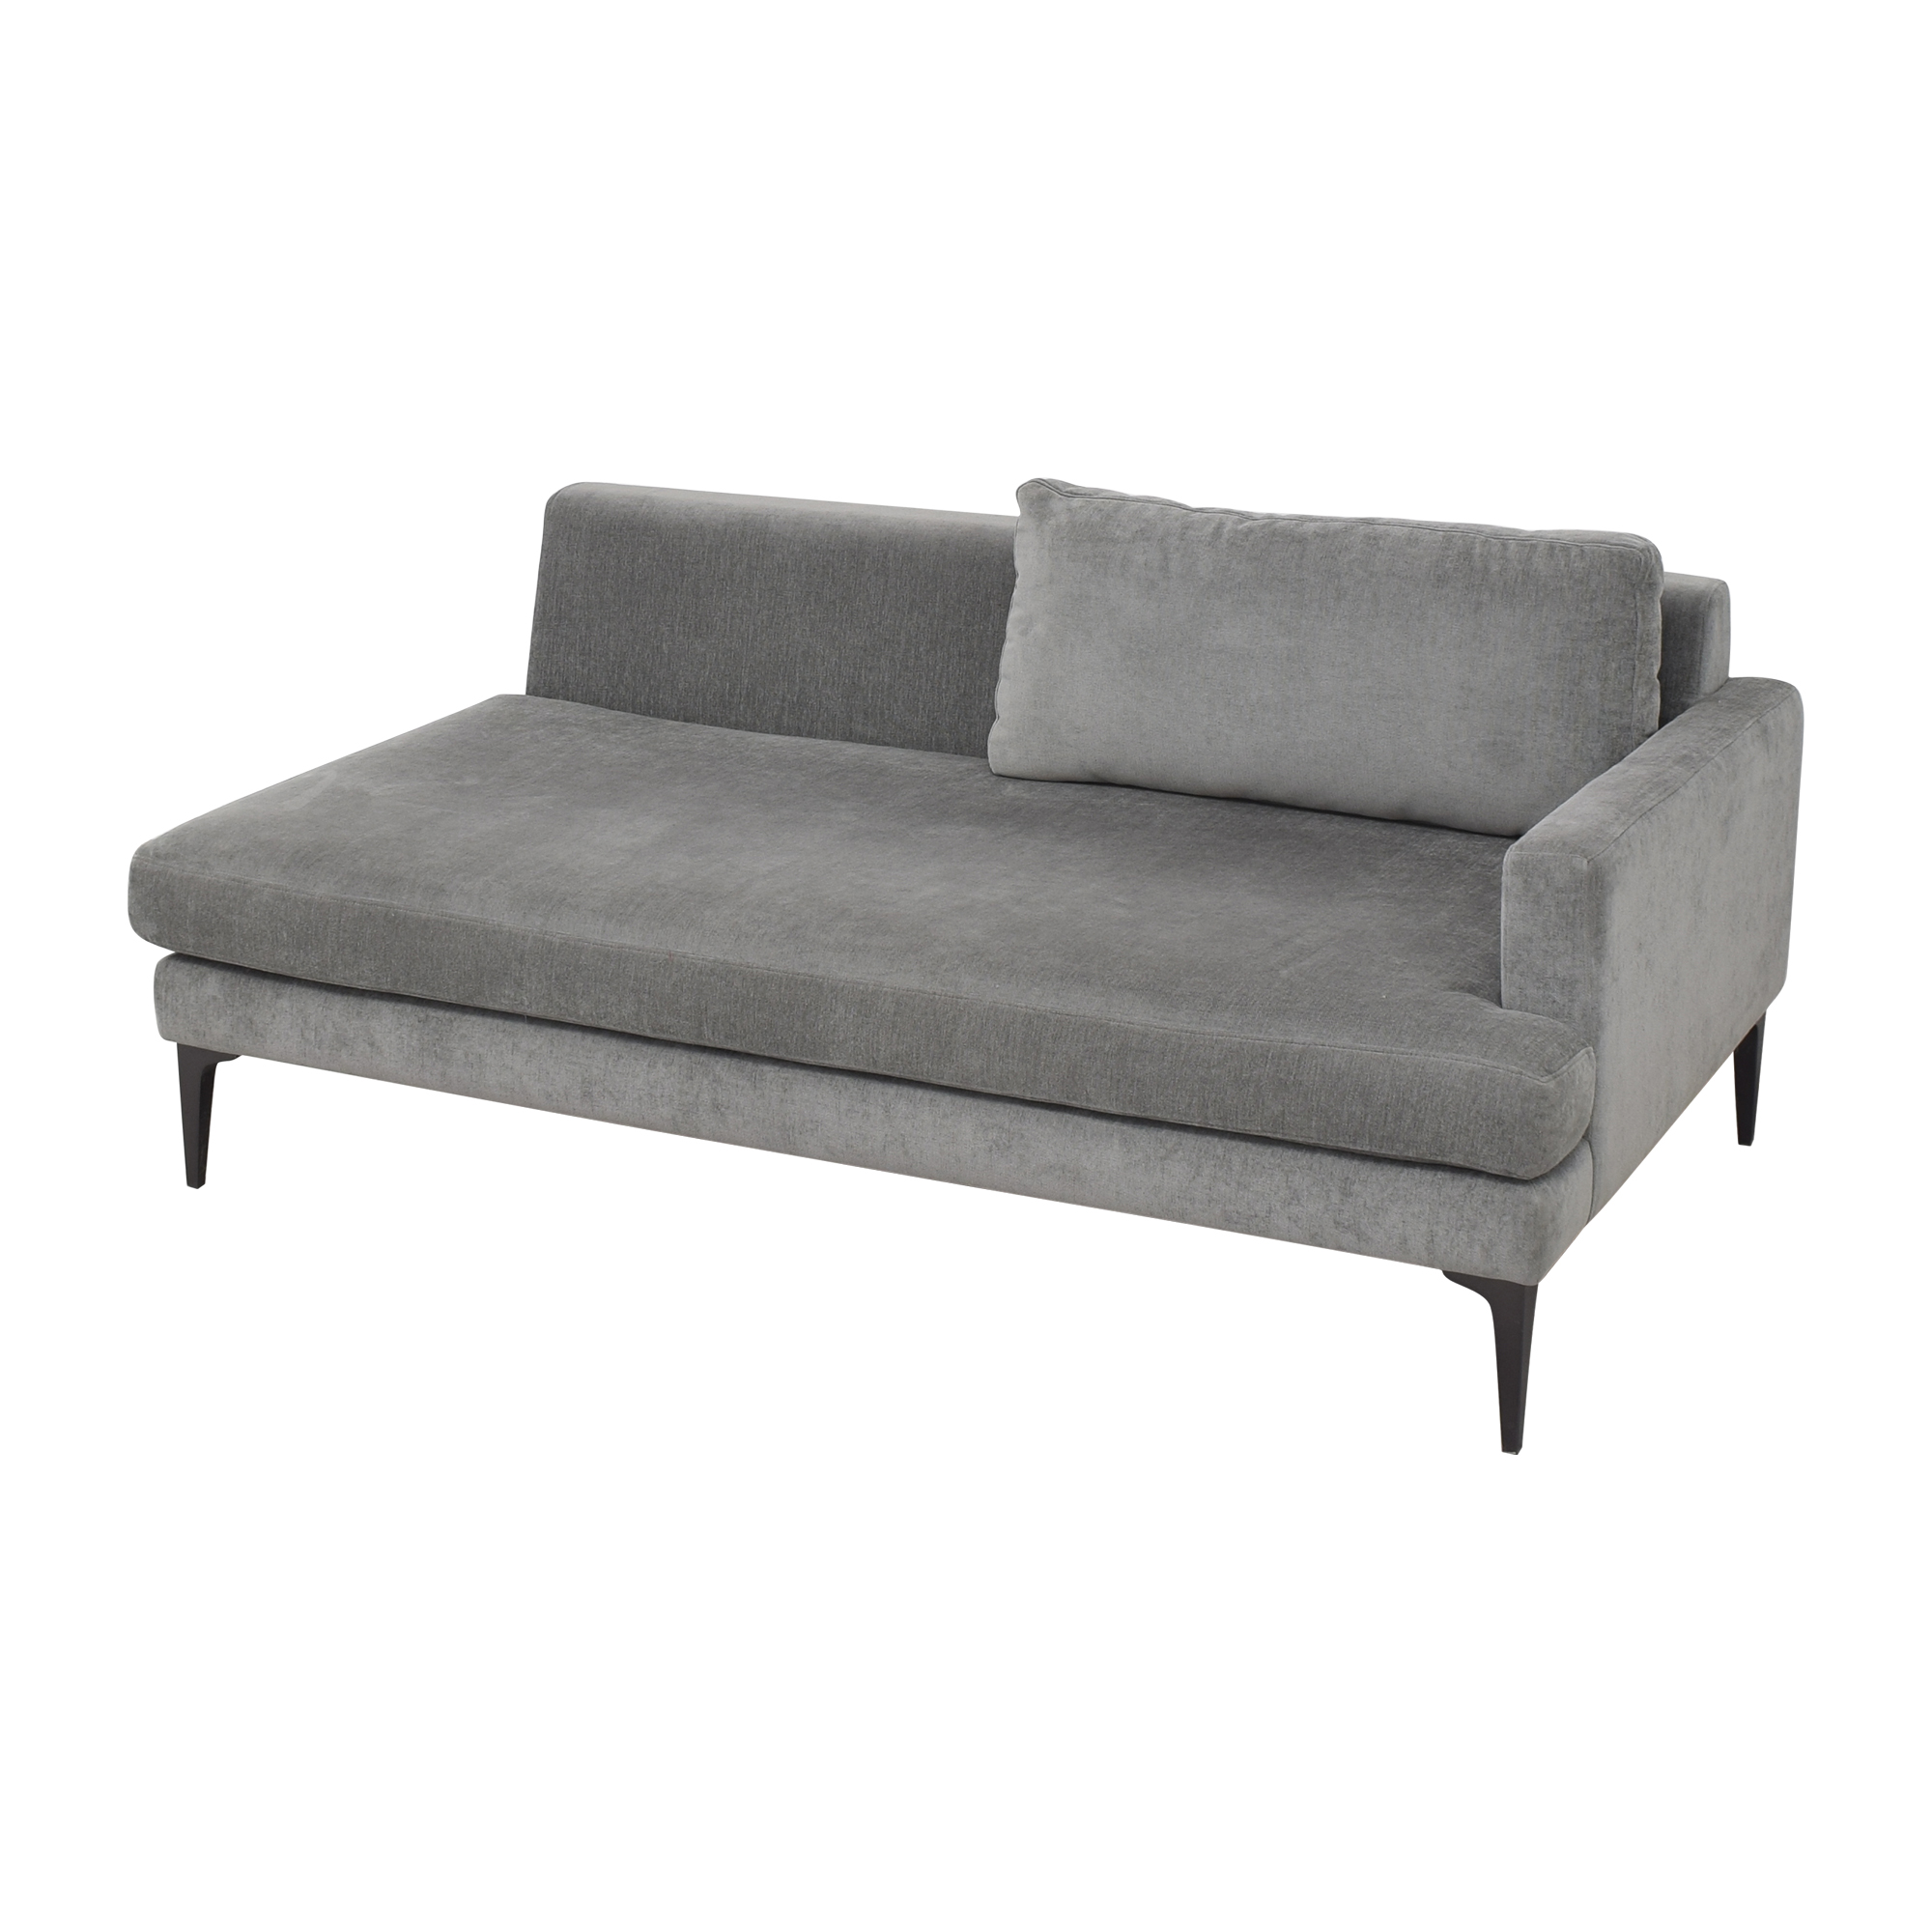 West Elm Andes Right Arm Sofa sale